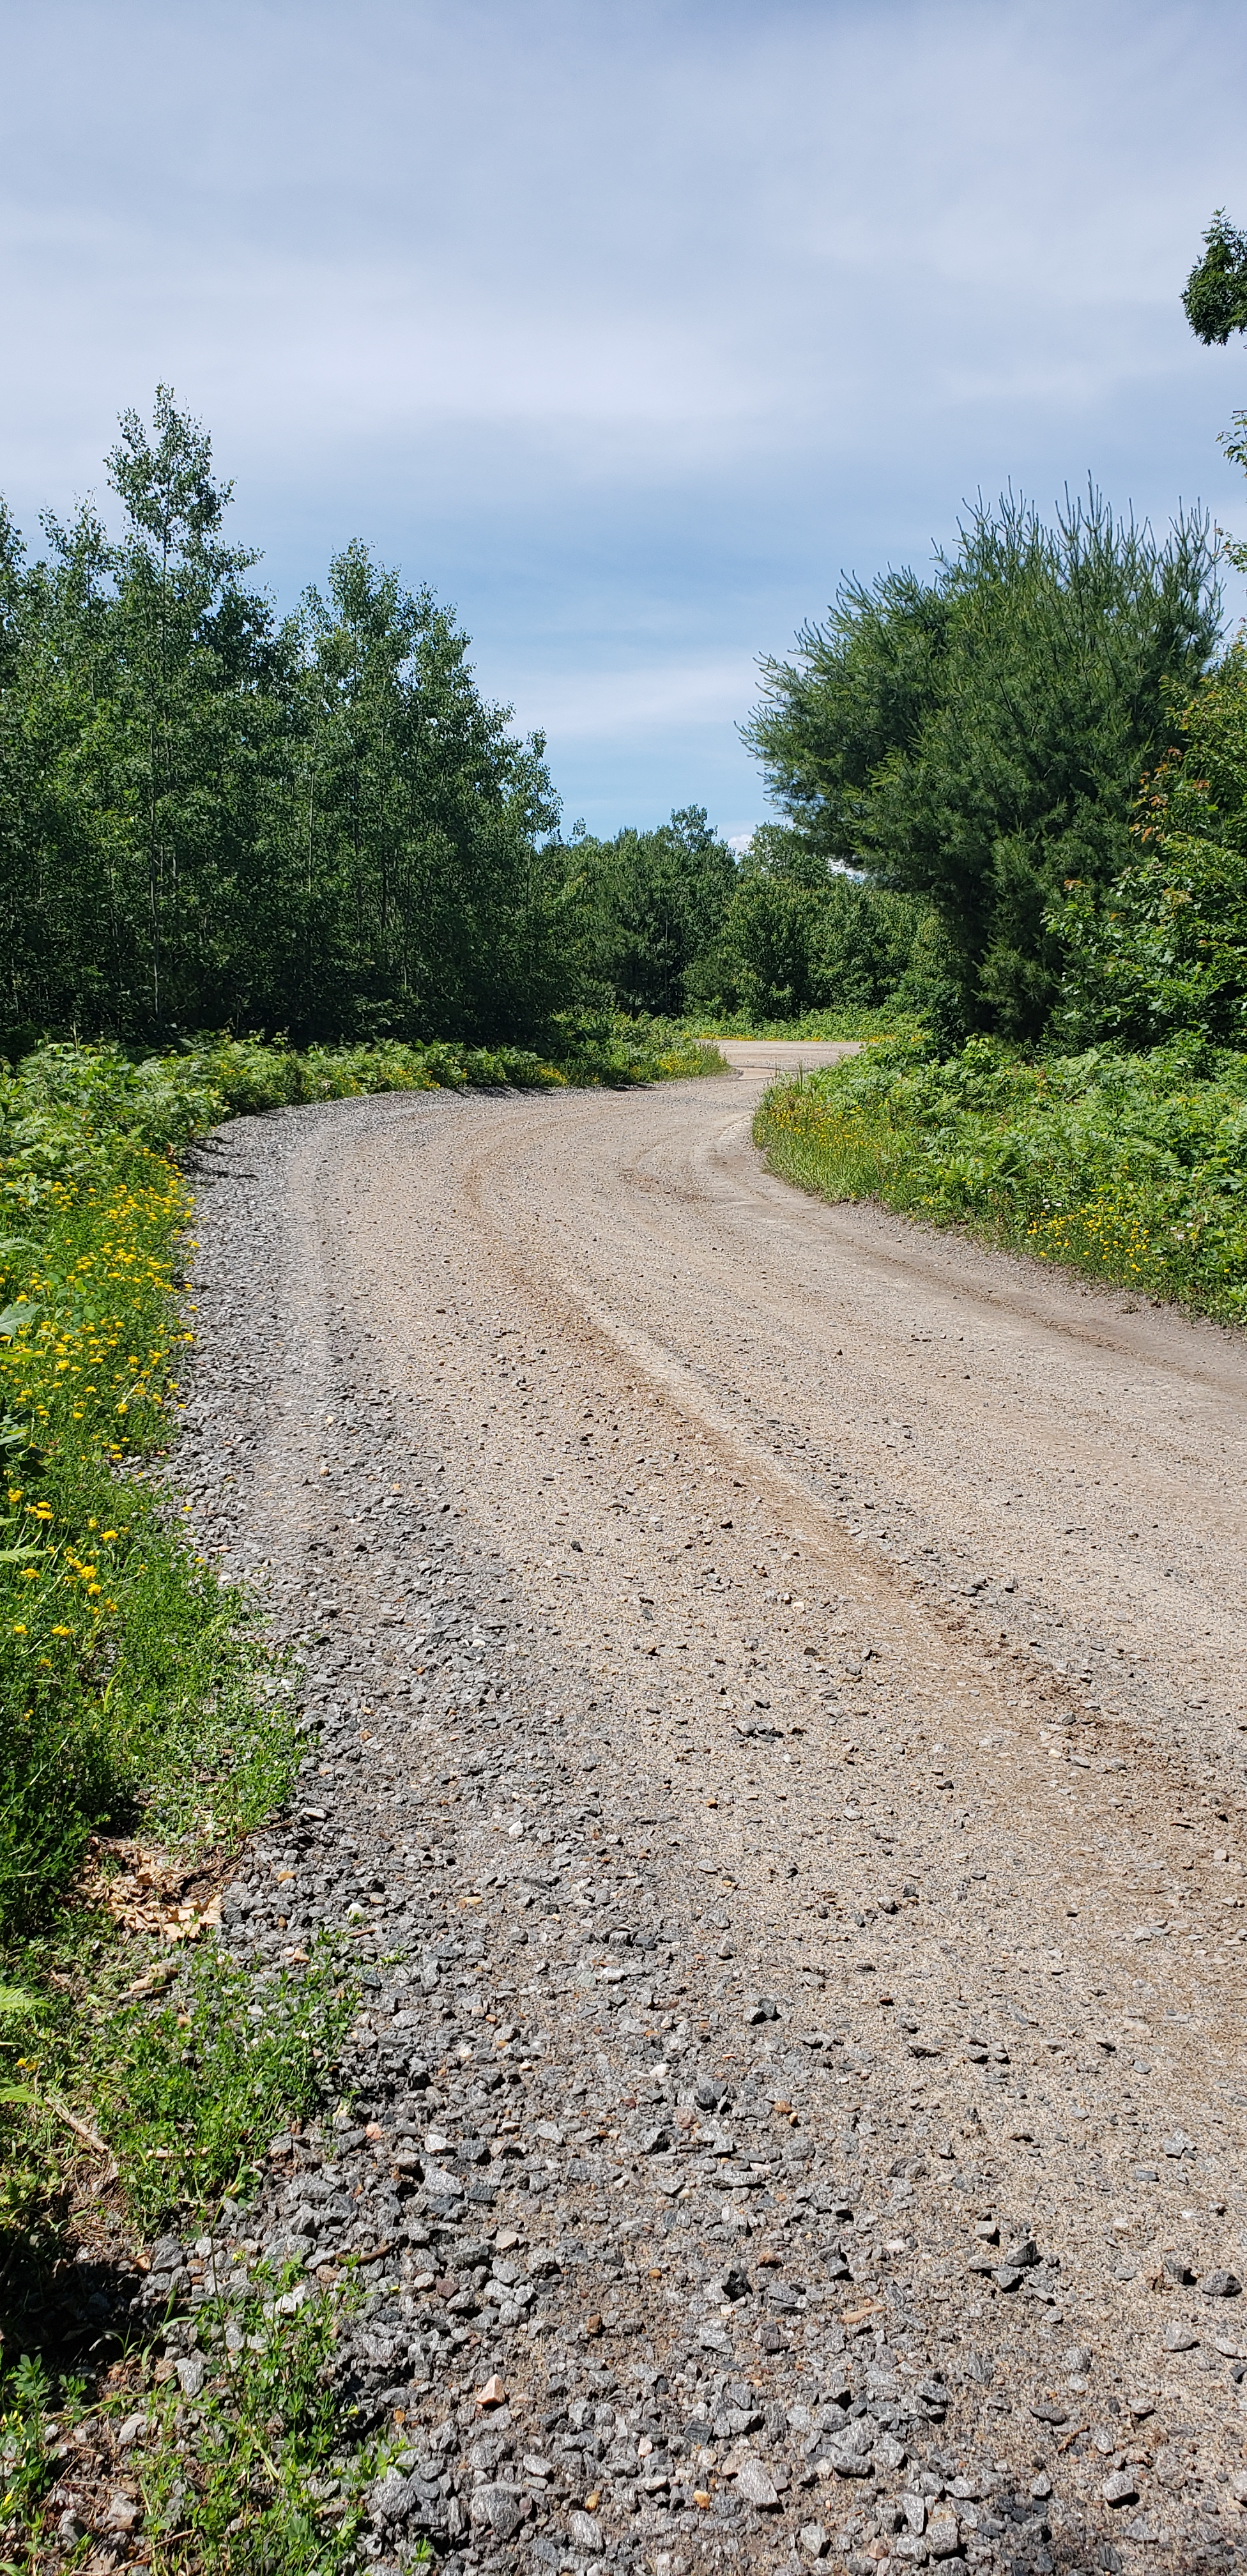 A gravel road and trees